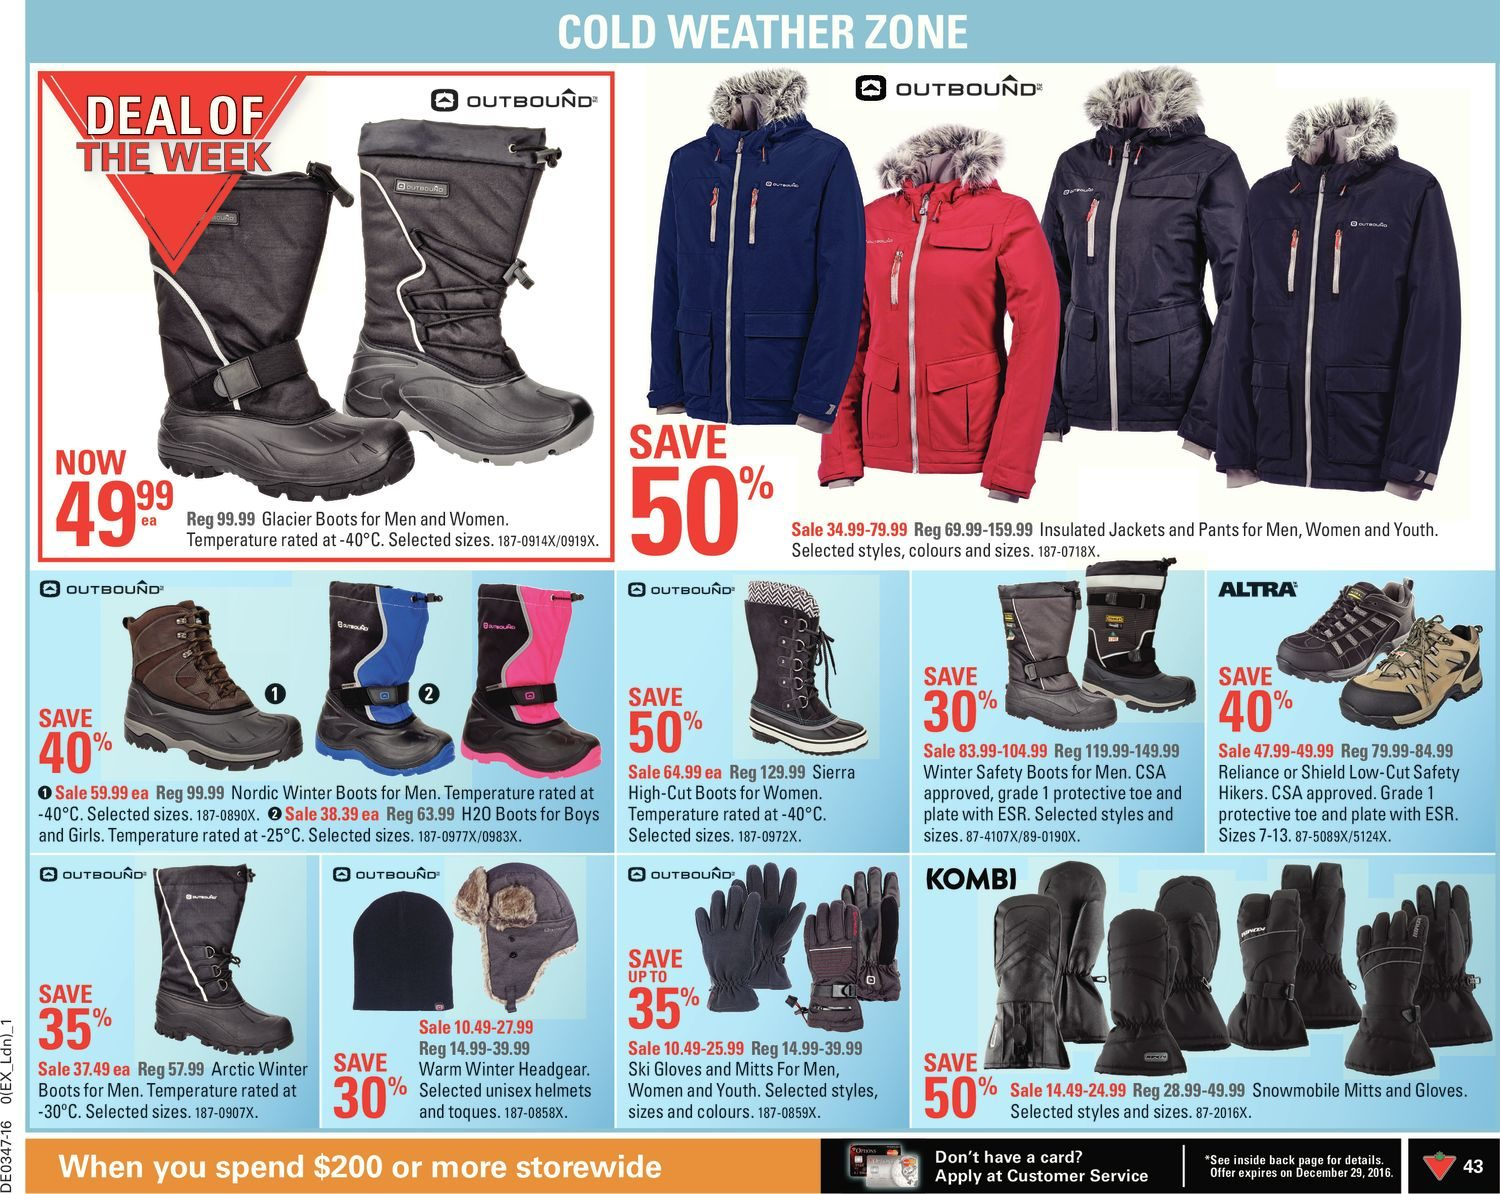 Canadian Tire Weekly Flyer - Weekly - Make It Festive - Nov 18 – 24 -  RedFlagDeals.com 98170bd2c77f8